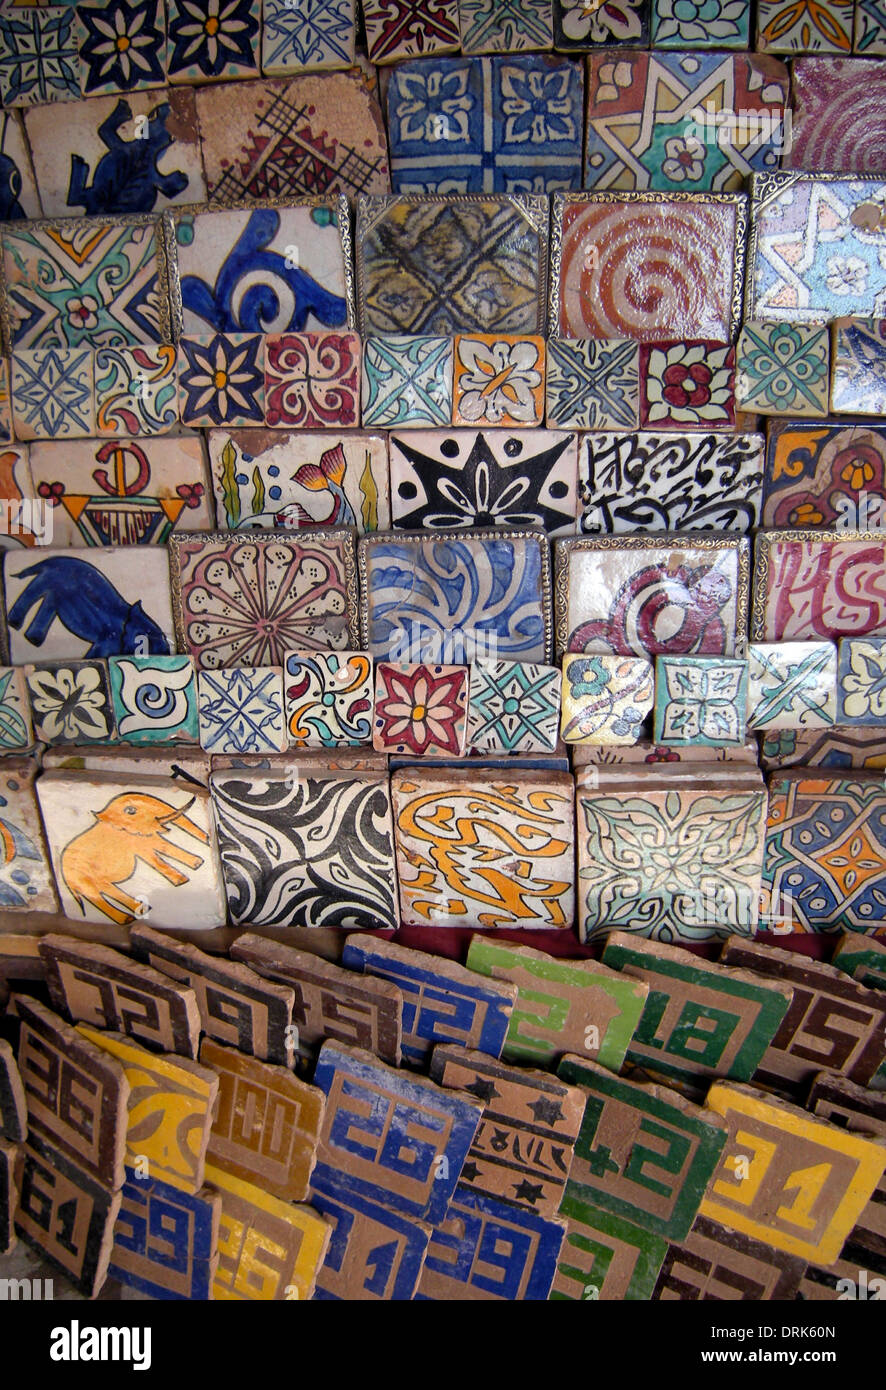 decorative ceramic tiles for sale in the souq marrakech morocco north africa - Ceramic Tile Castle Decoration